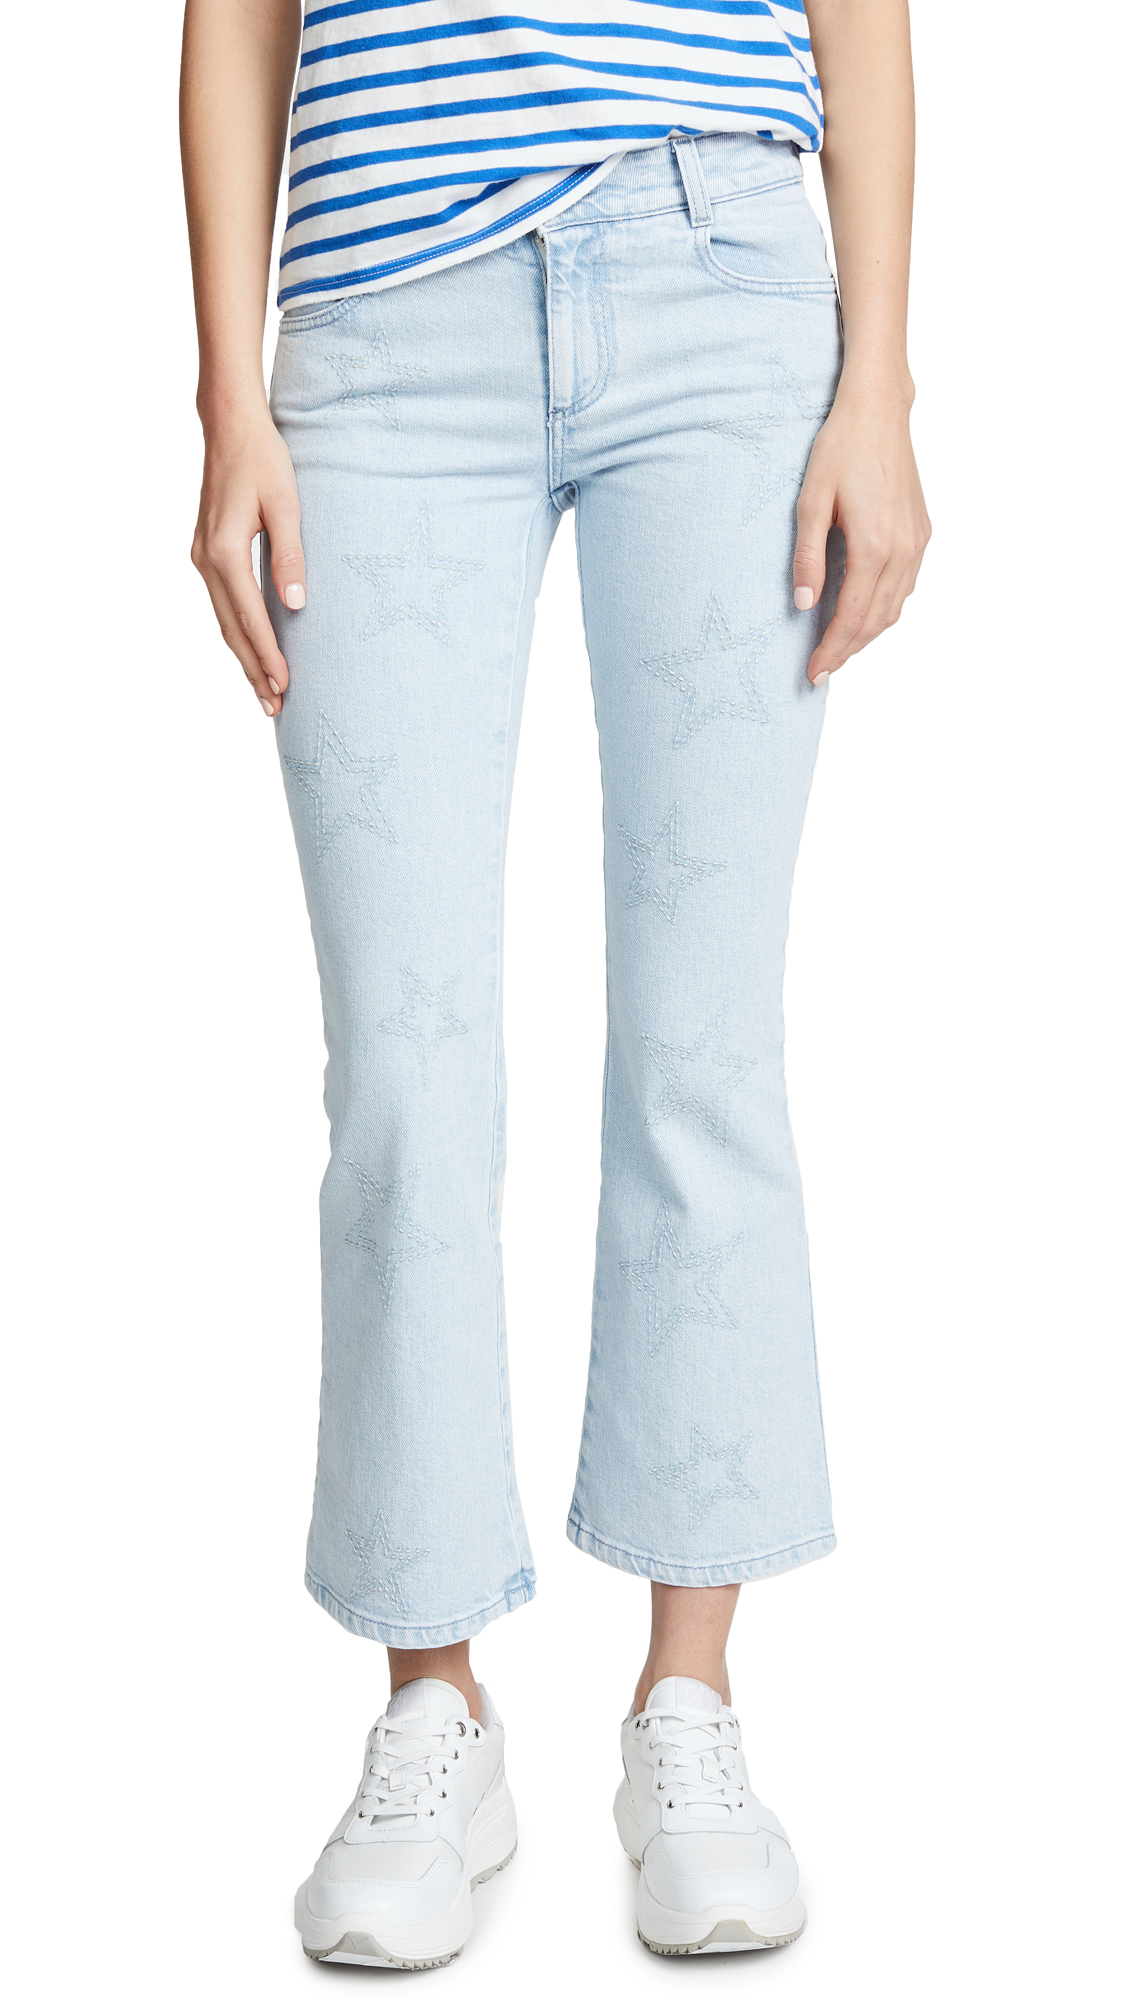 The Skinny Light Wash Flare Jeans